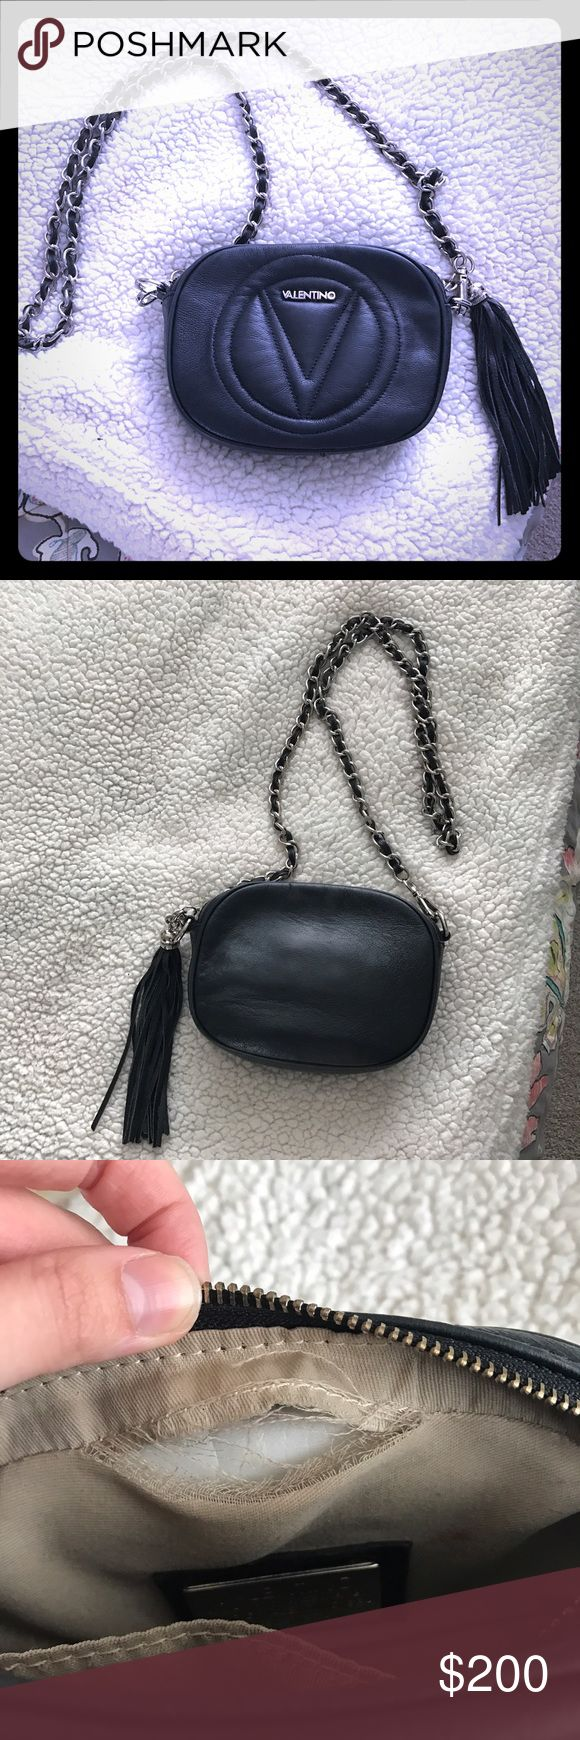 Black Valentino Crossbody Black leather Valentino by Mario Valentino Crossbody, torn on inside but otherwise excellent condition! No trades! Mario Valentino Bags Crossbody Bags